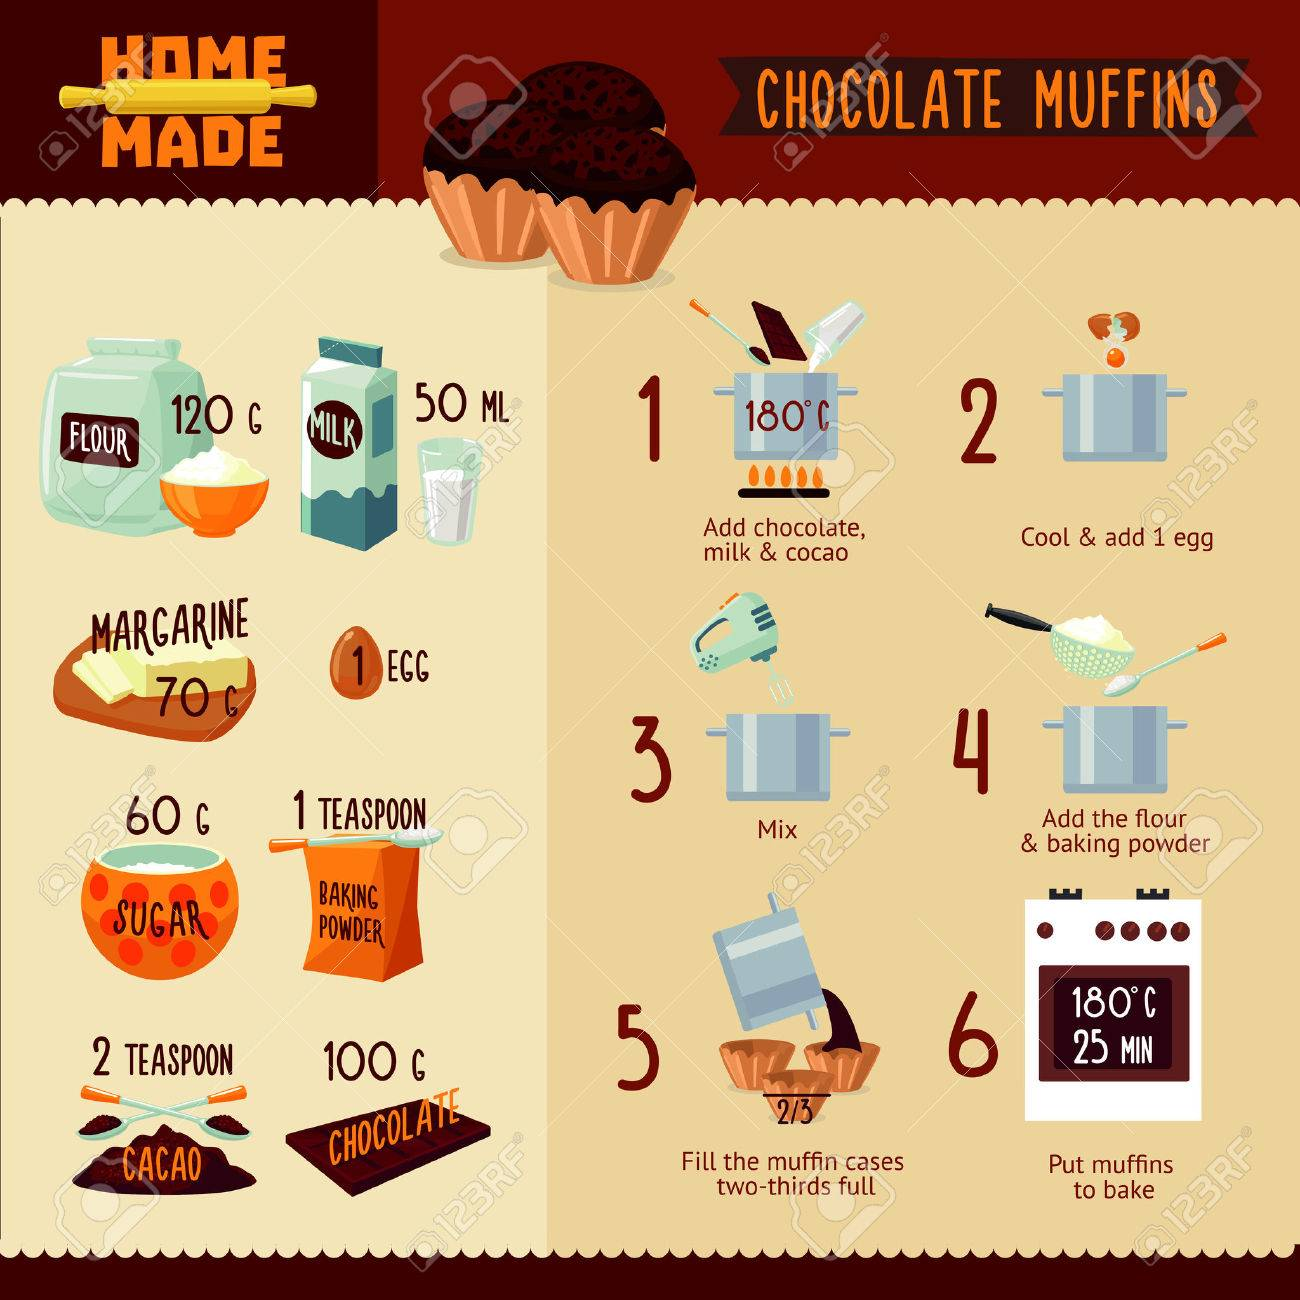 Chocolate muffins recipe infographic concept with ingredients and stages of preparation vector illustration. Stock Vector - 75650424